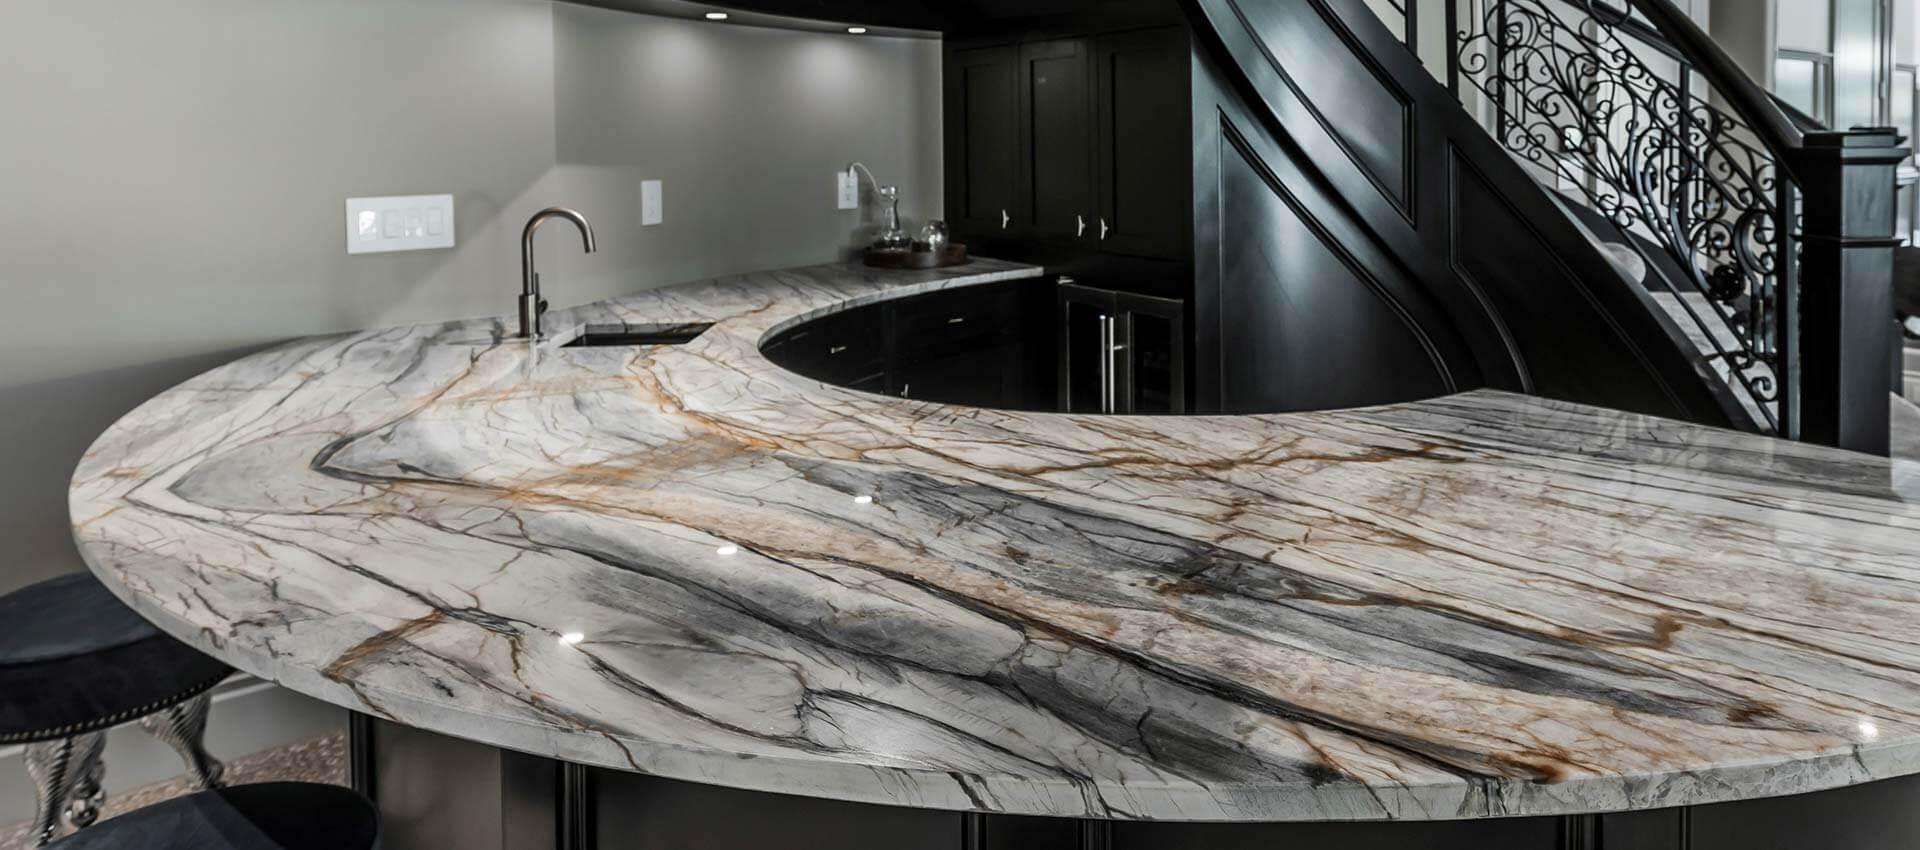 Lucrative Marble and Granite Company In The USA